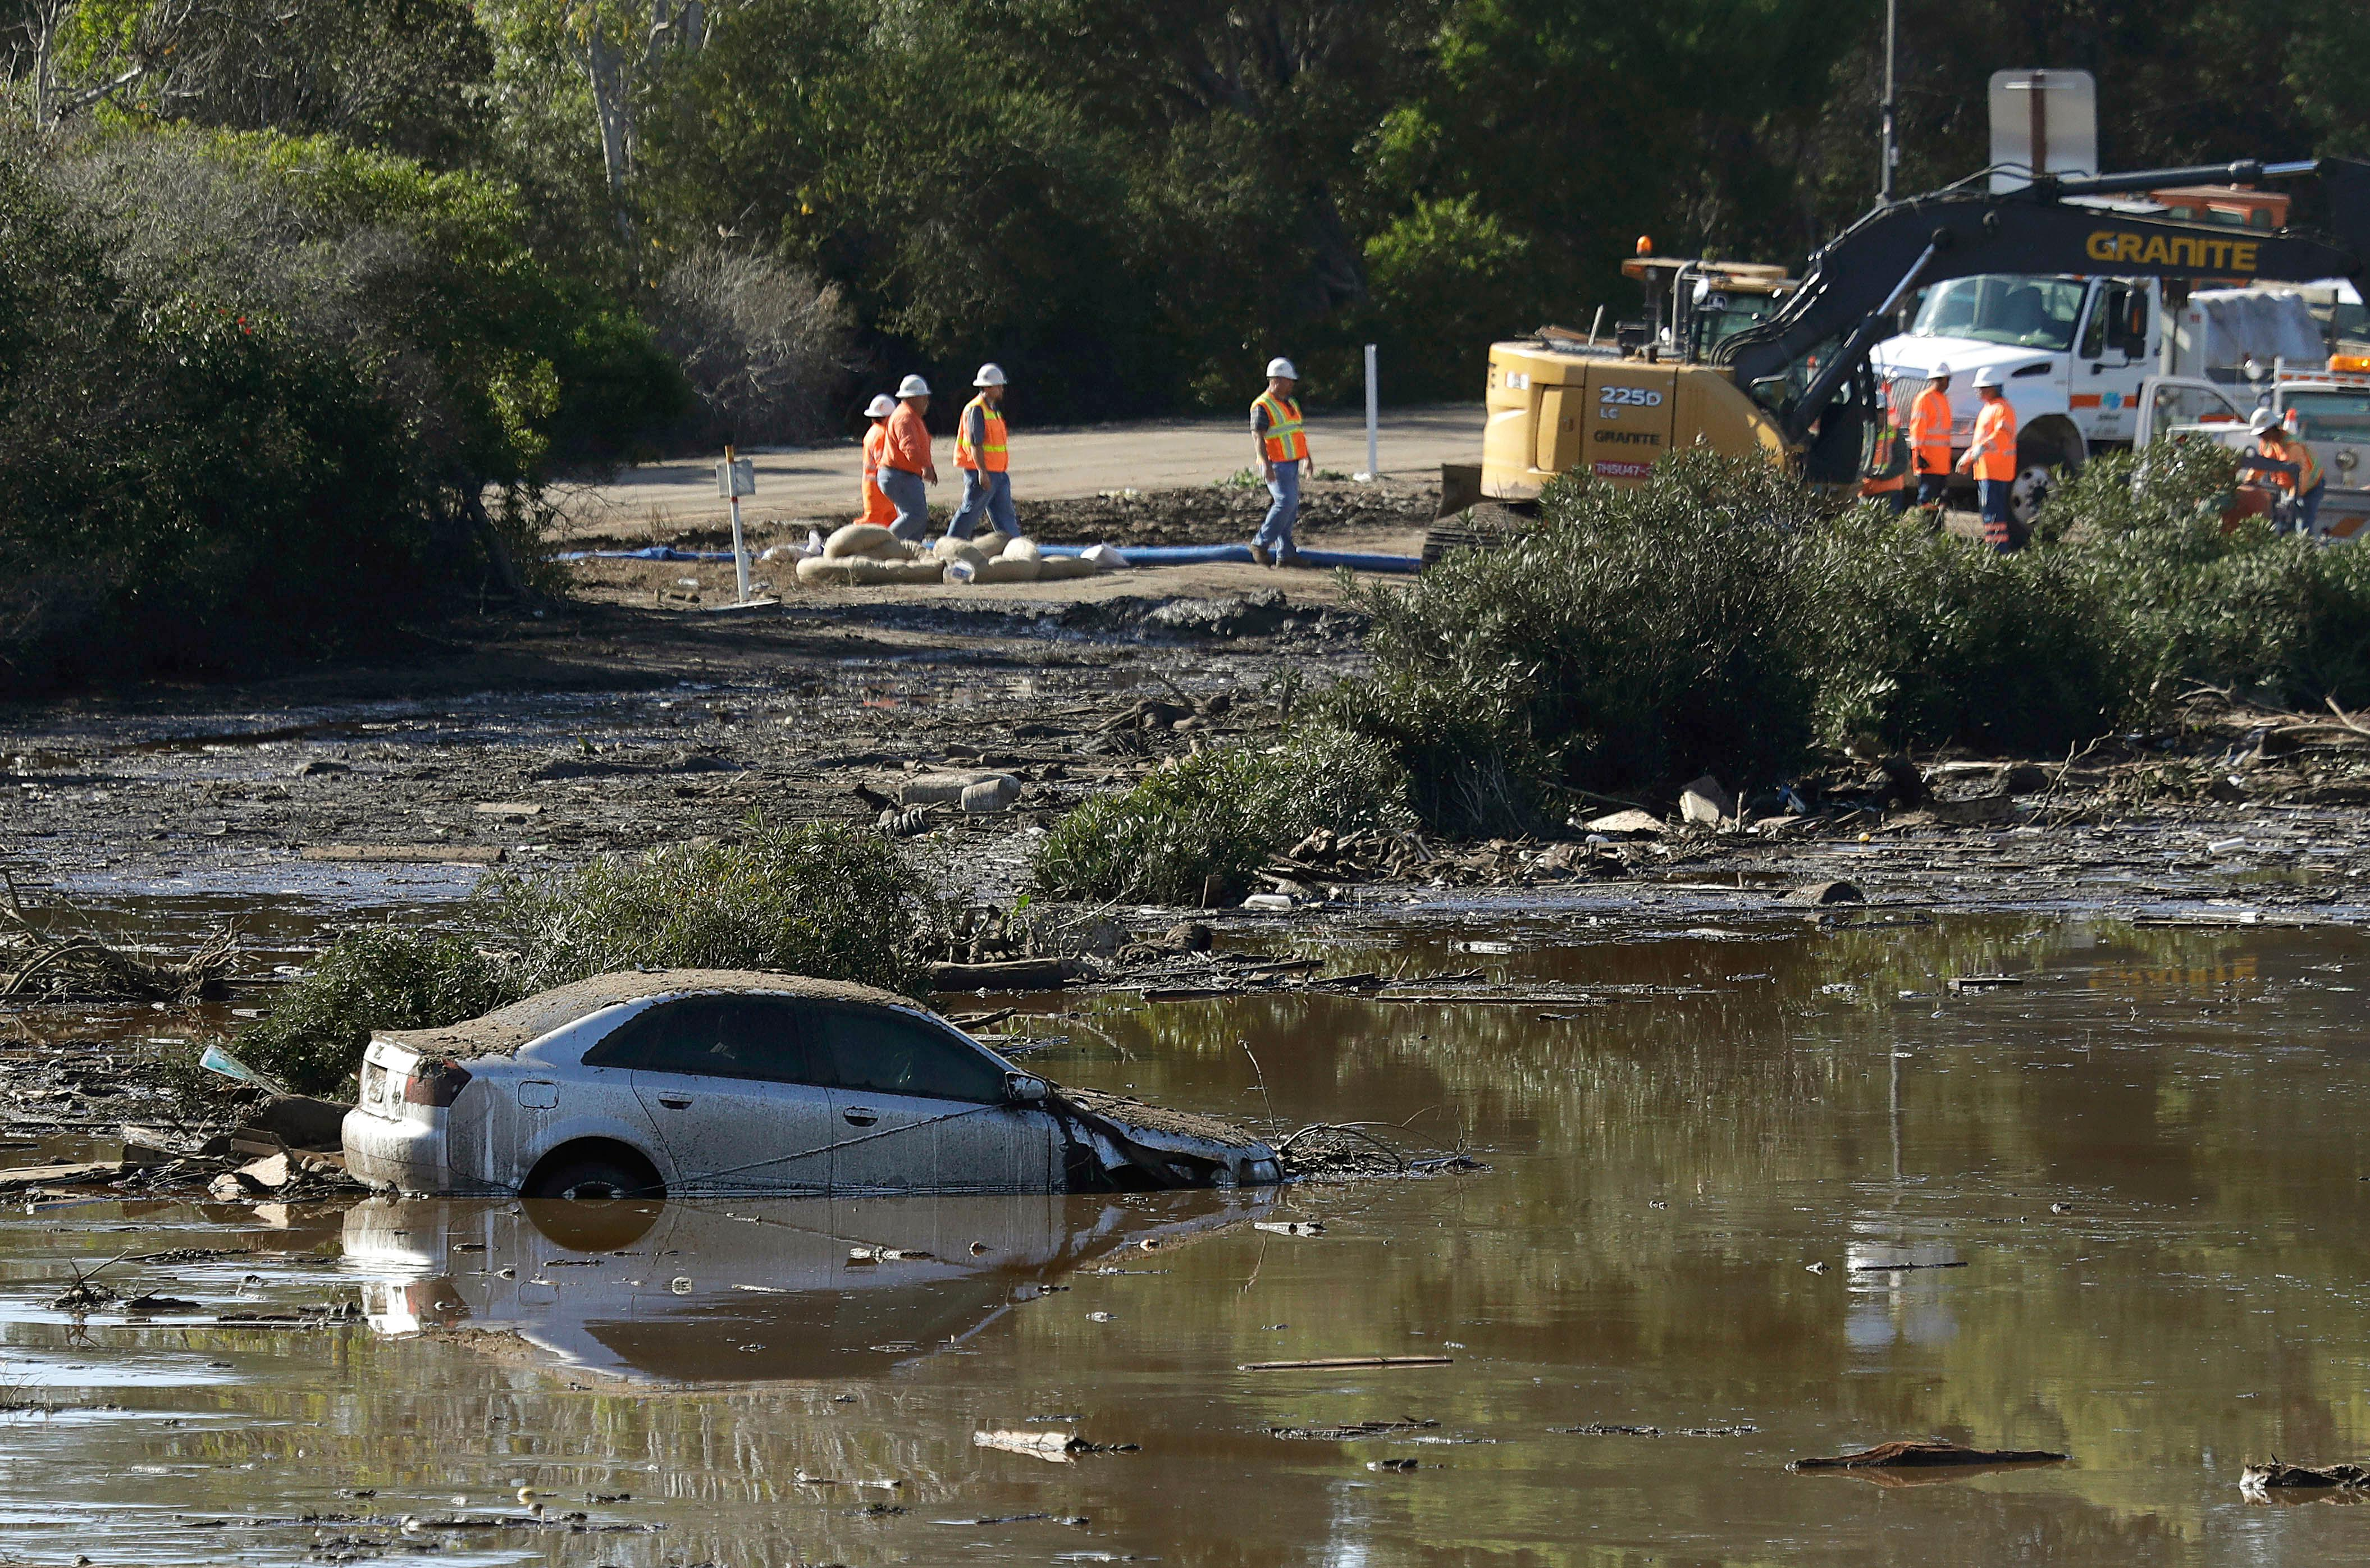 A car sits stranded in flooded water in Montecito, Calif., Wednesday, Jan. 10, 2018. Dozens of homes were swept away or heavily damaged and several people were killed Tuesday as downpours sent mud and boulders roaring down hills stripped of vegetation by a gigantic wildfire that raged in Southern California last month. (AP Photo/Marcio Jose Sanchez)